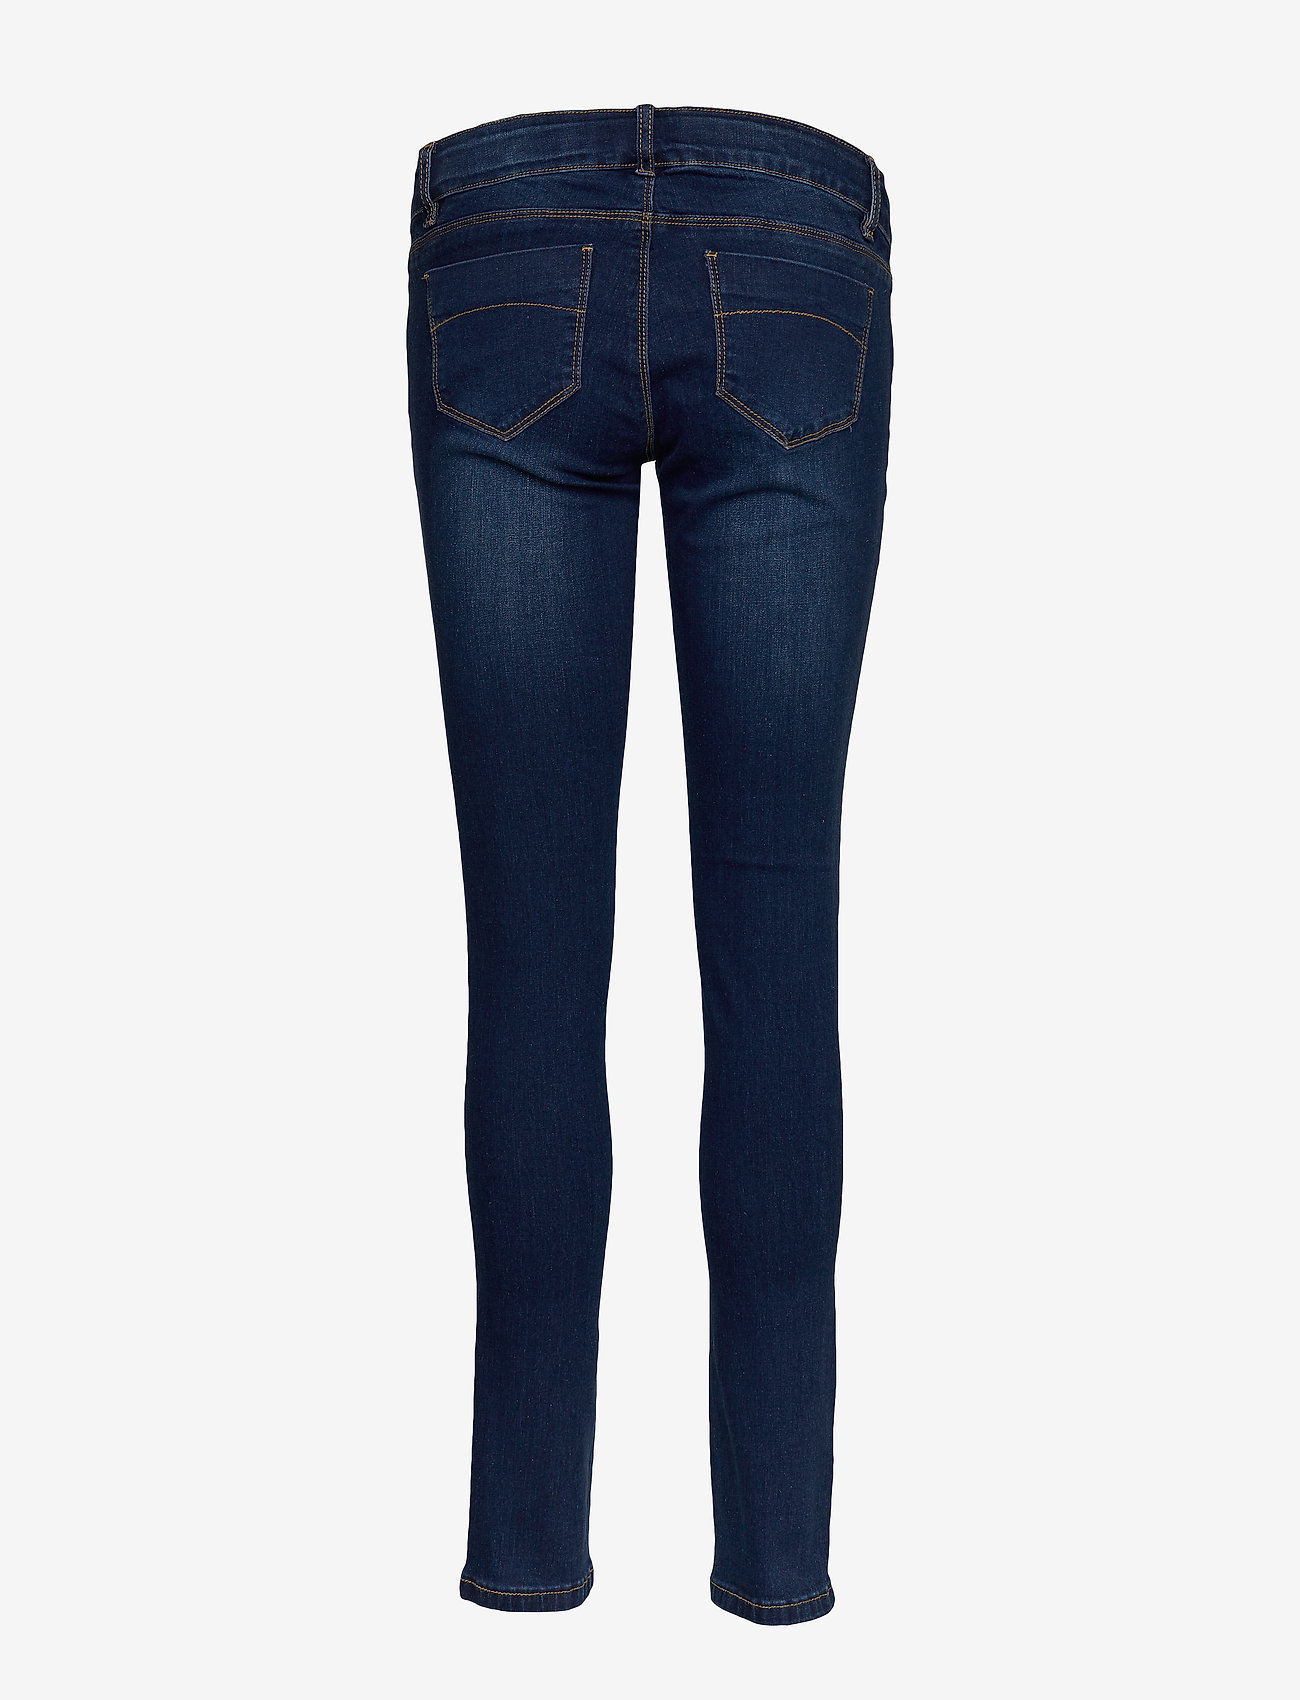 Mamalicious - MLLOLA SLIM DARK BLUE JEANS W ELAST - slim jeans - dark blue denim - 1